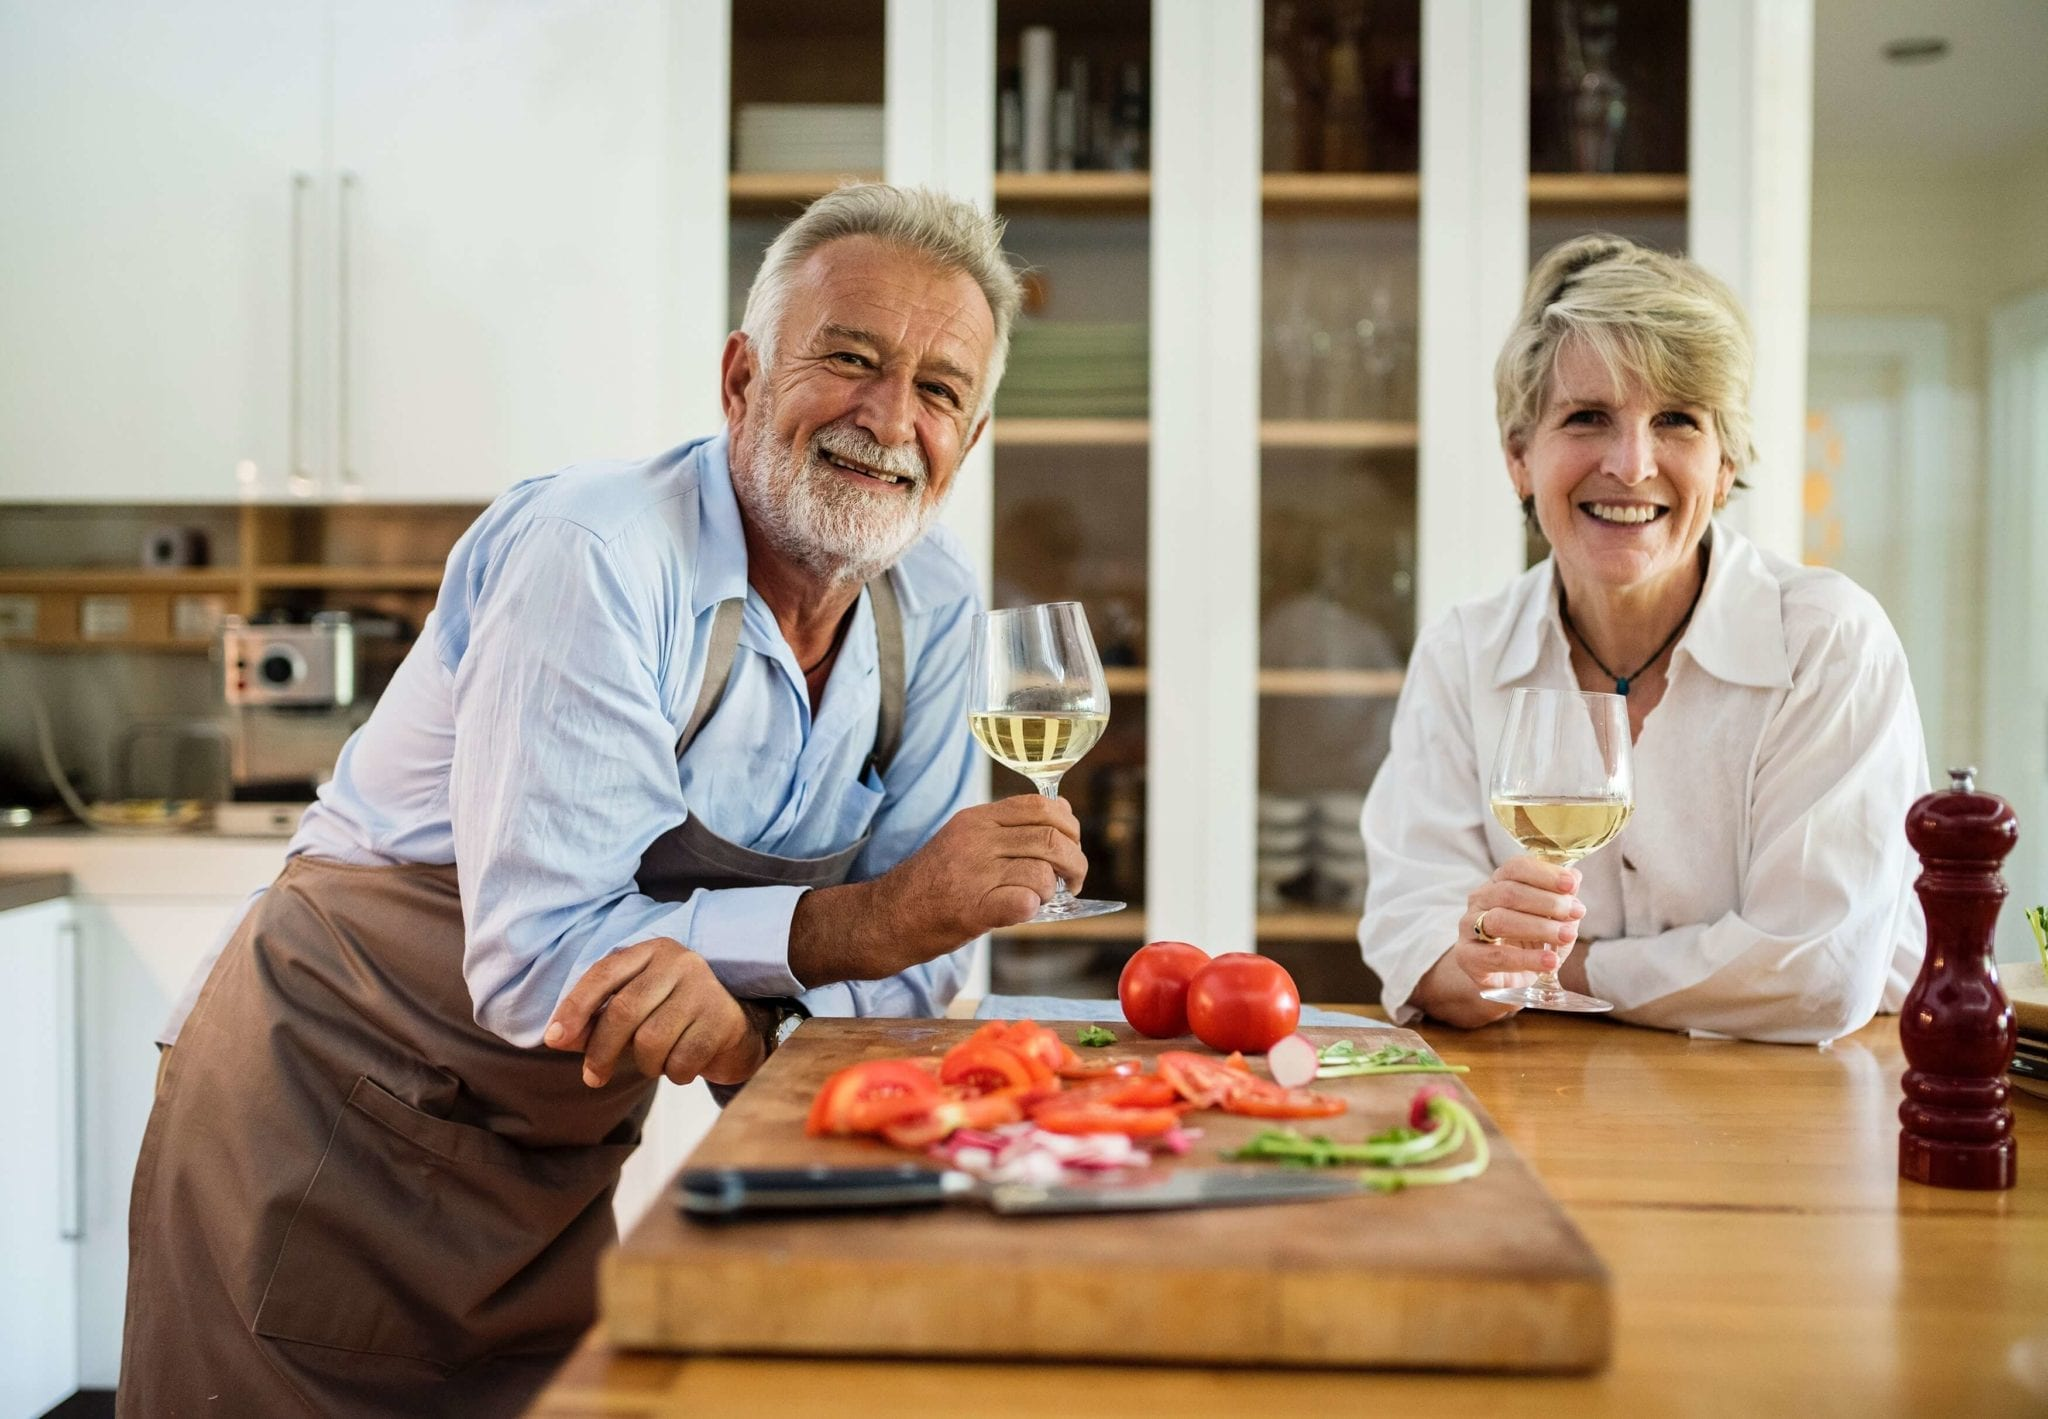 Two older adults enjoy wine and vegetables in their kitchen